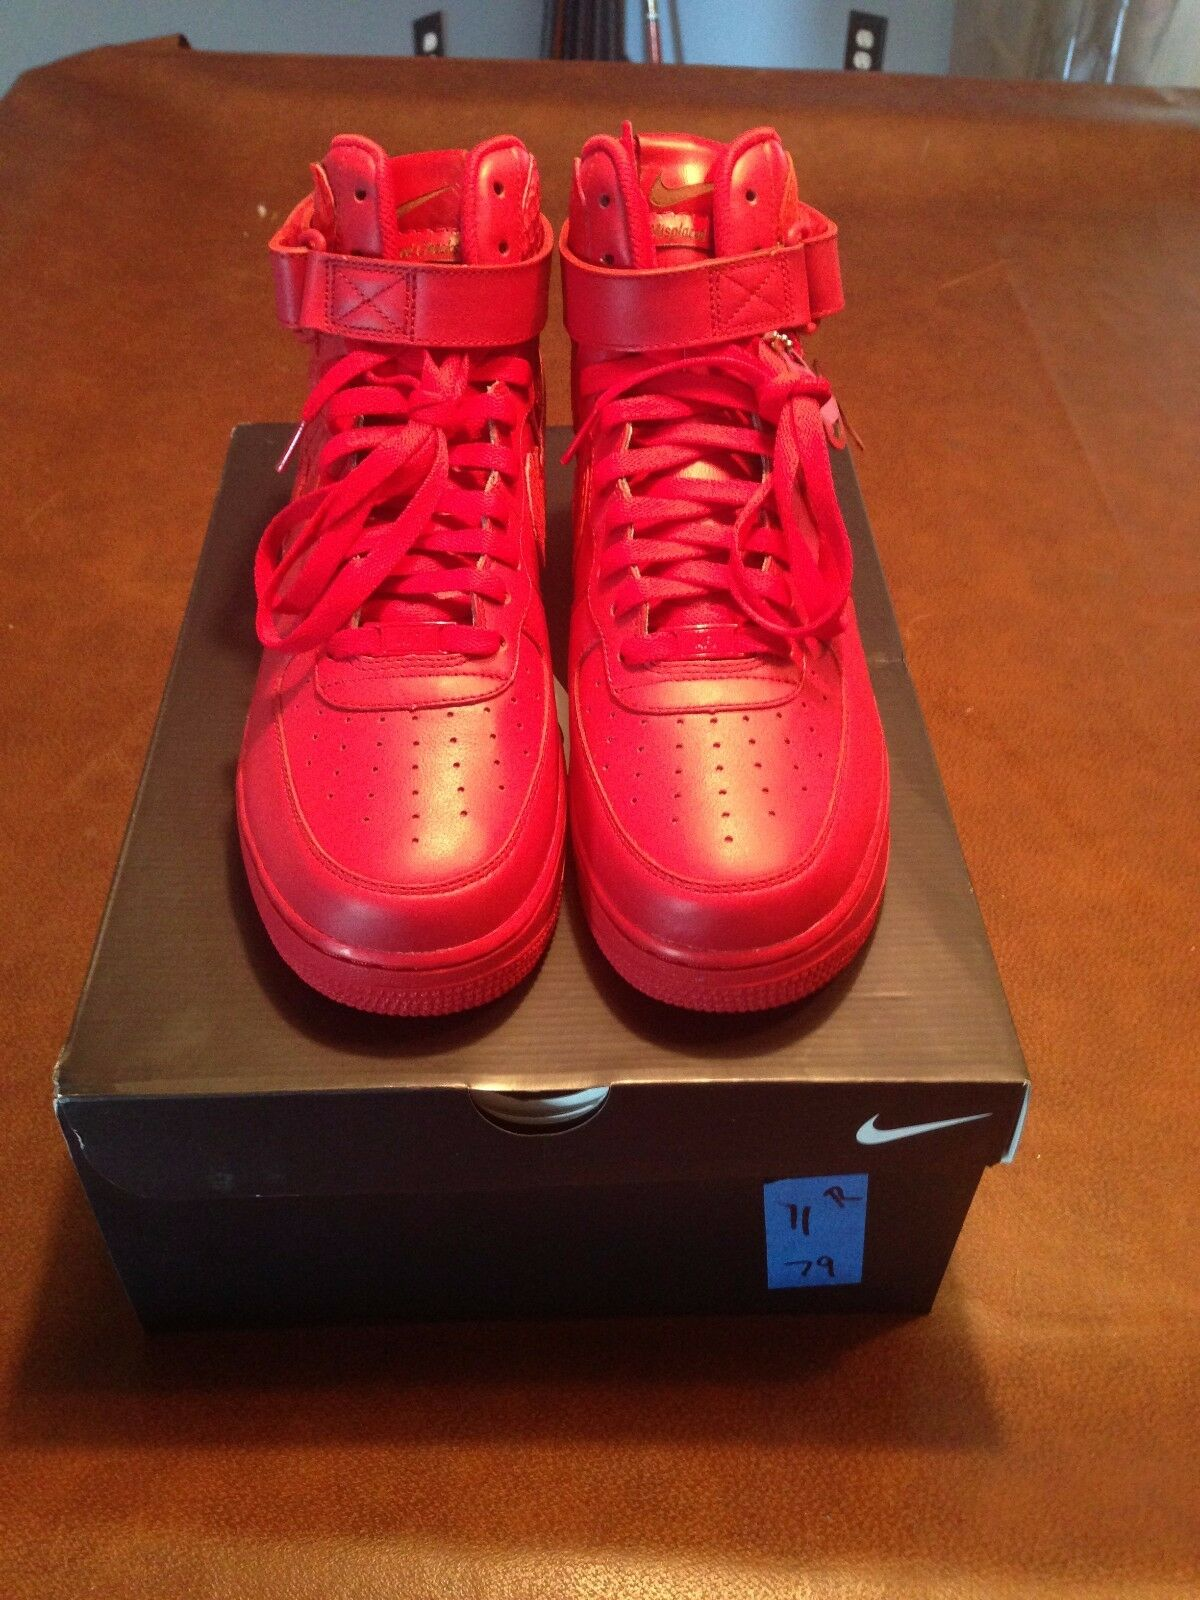 Nike Air Force 1 MISPLACED CHECKS John Geiger Shoe Surgeon Red Size 11 max yeezy